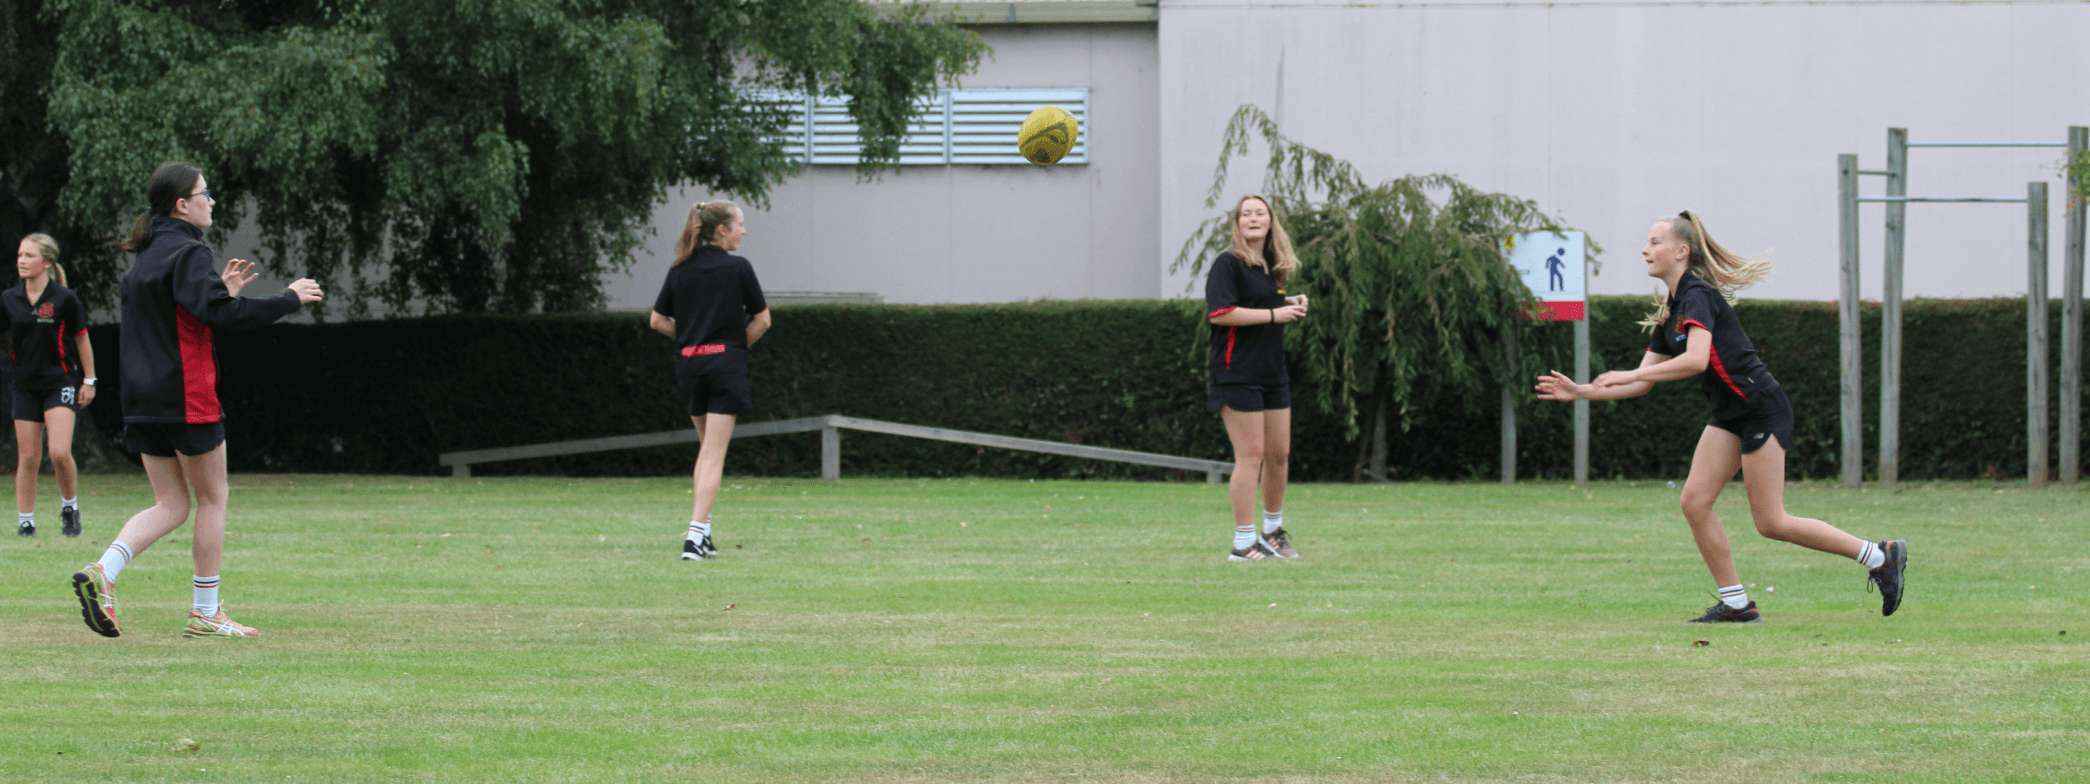 Waitaki Girls High students playing rugby